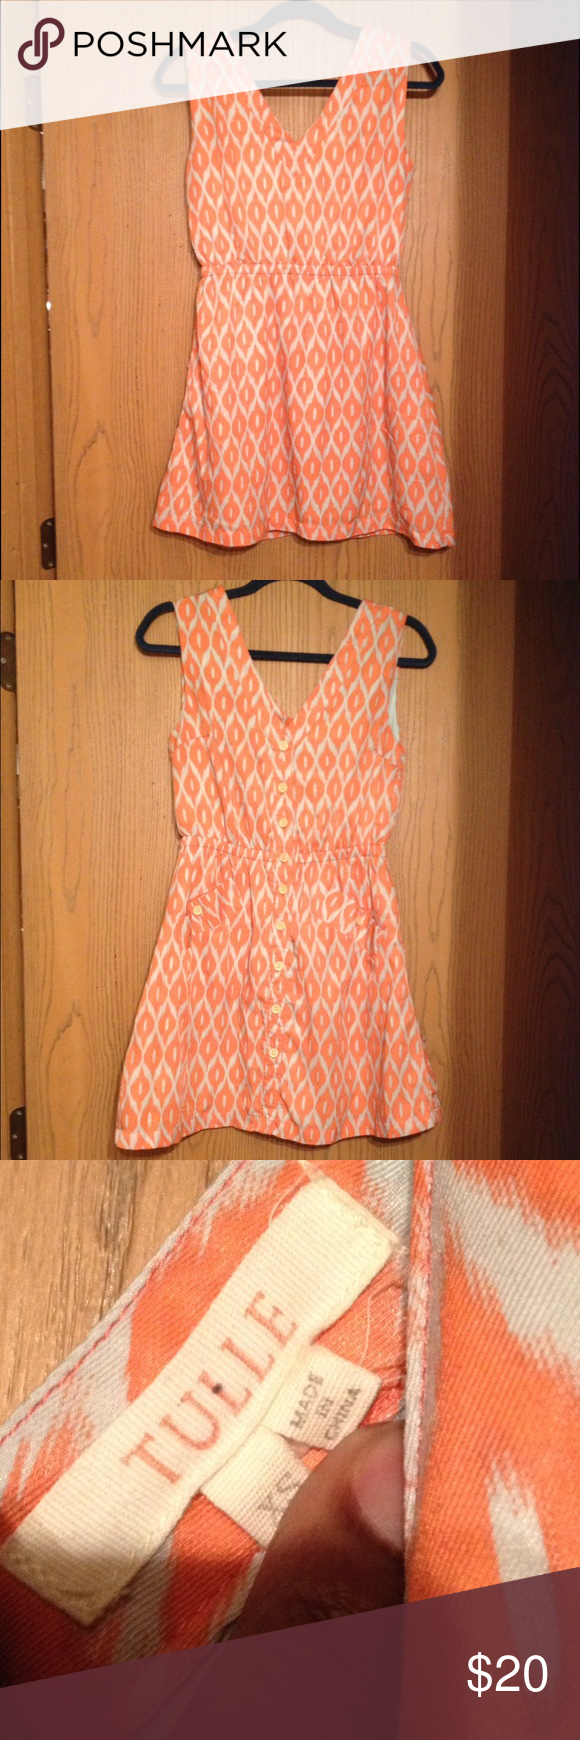 ❤️❤️Summer dress❤️❤️ Orange & Diamond diamond patterned summer dress.  In great condition. Tulle Dresses